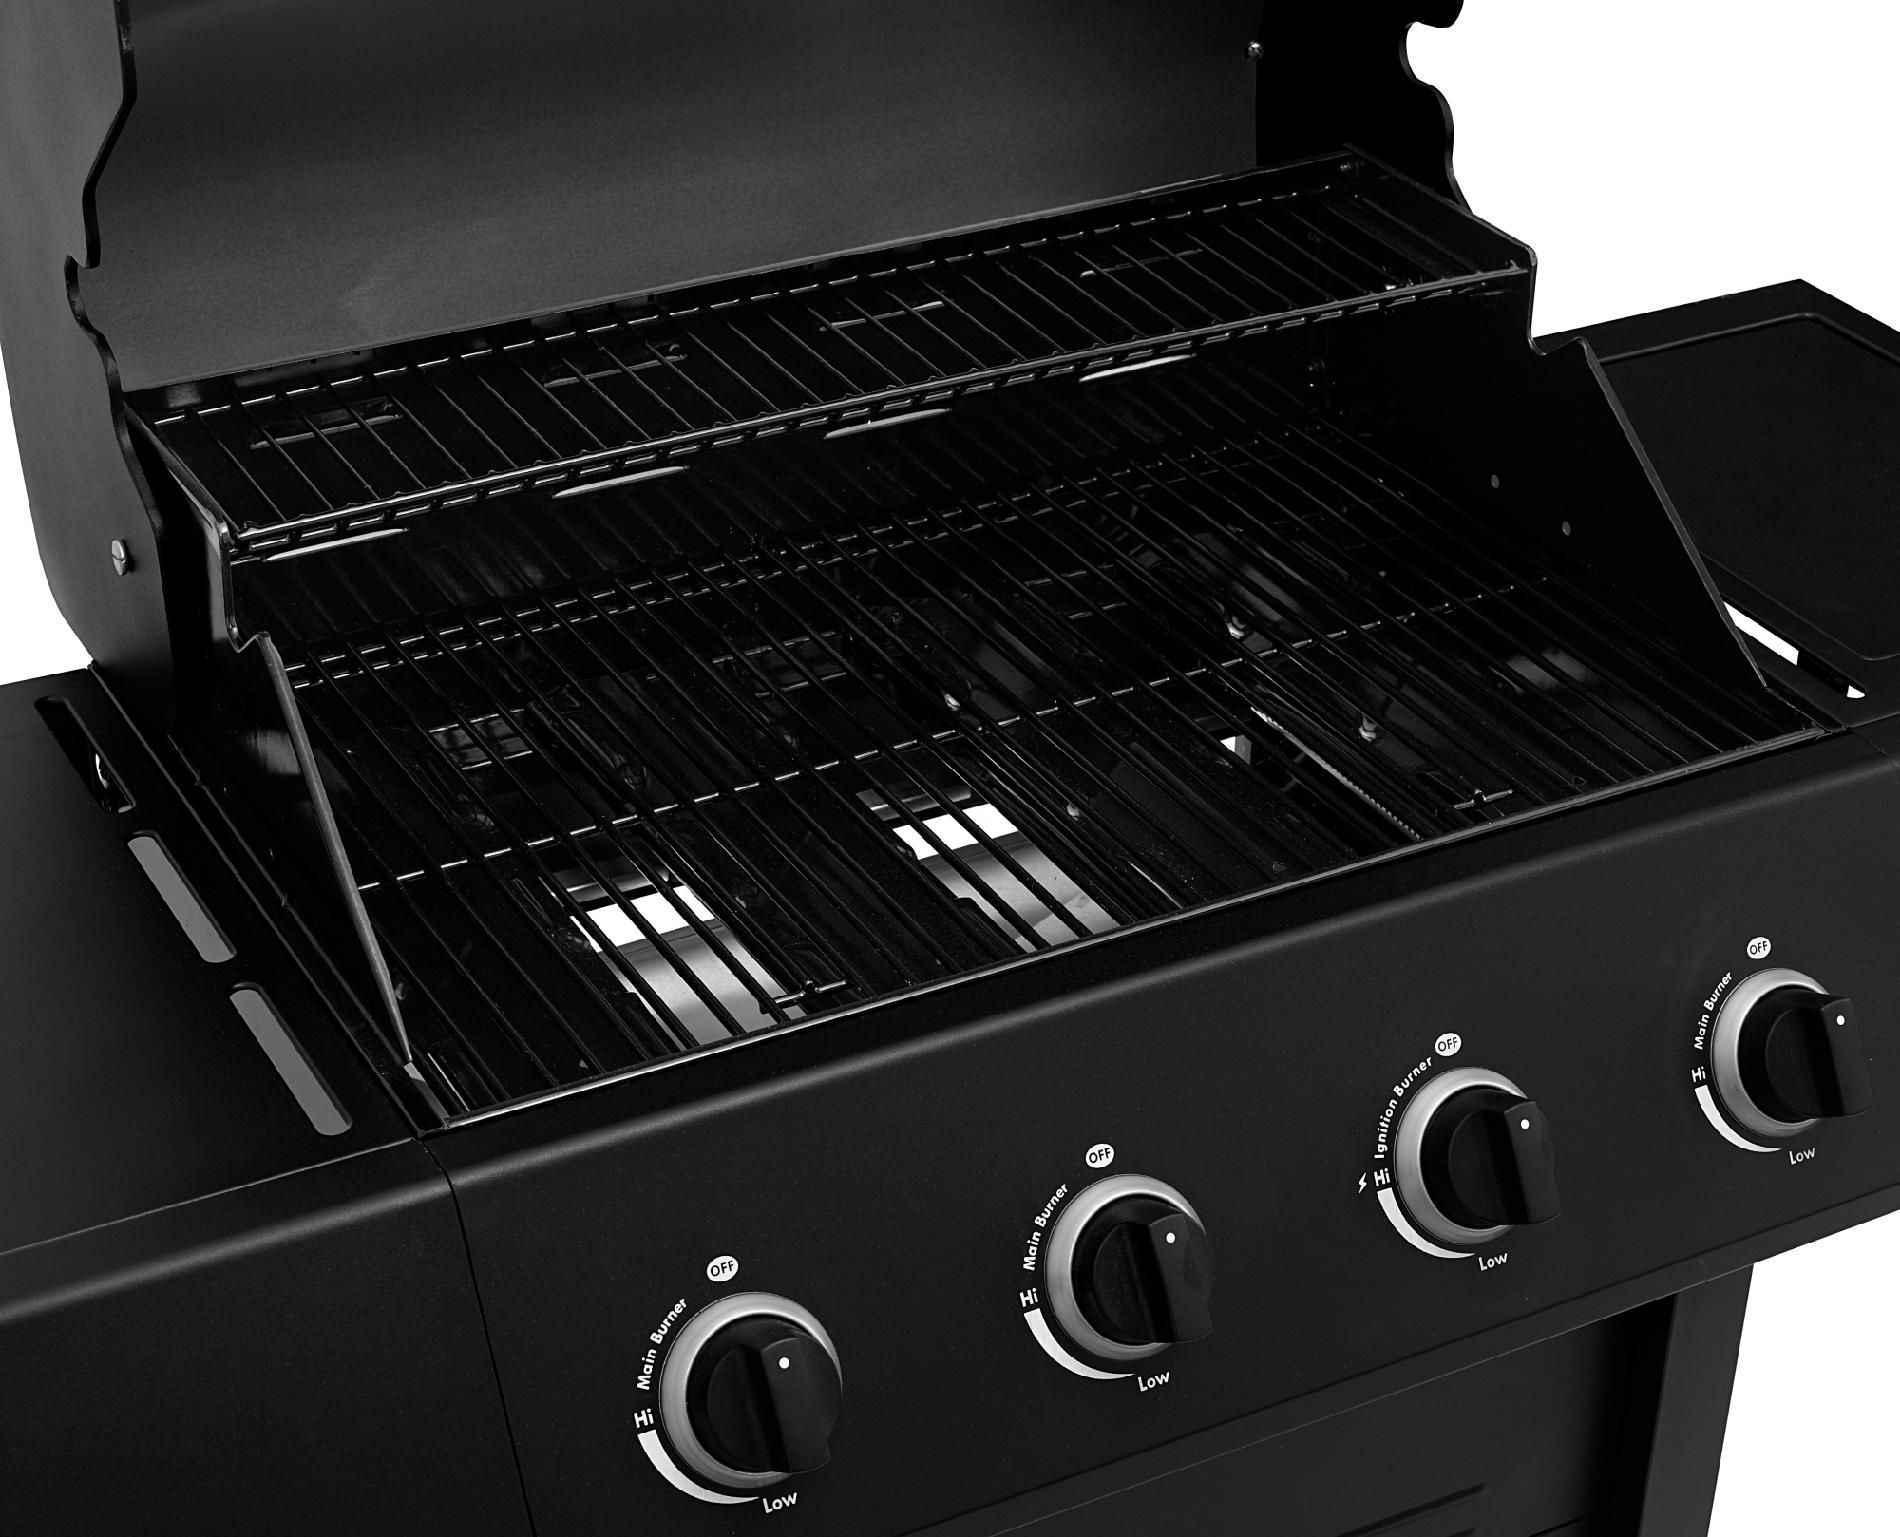 BBQ Pro 4 Burner Gas Grill with Stainless Steel Lid* Limited Availability